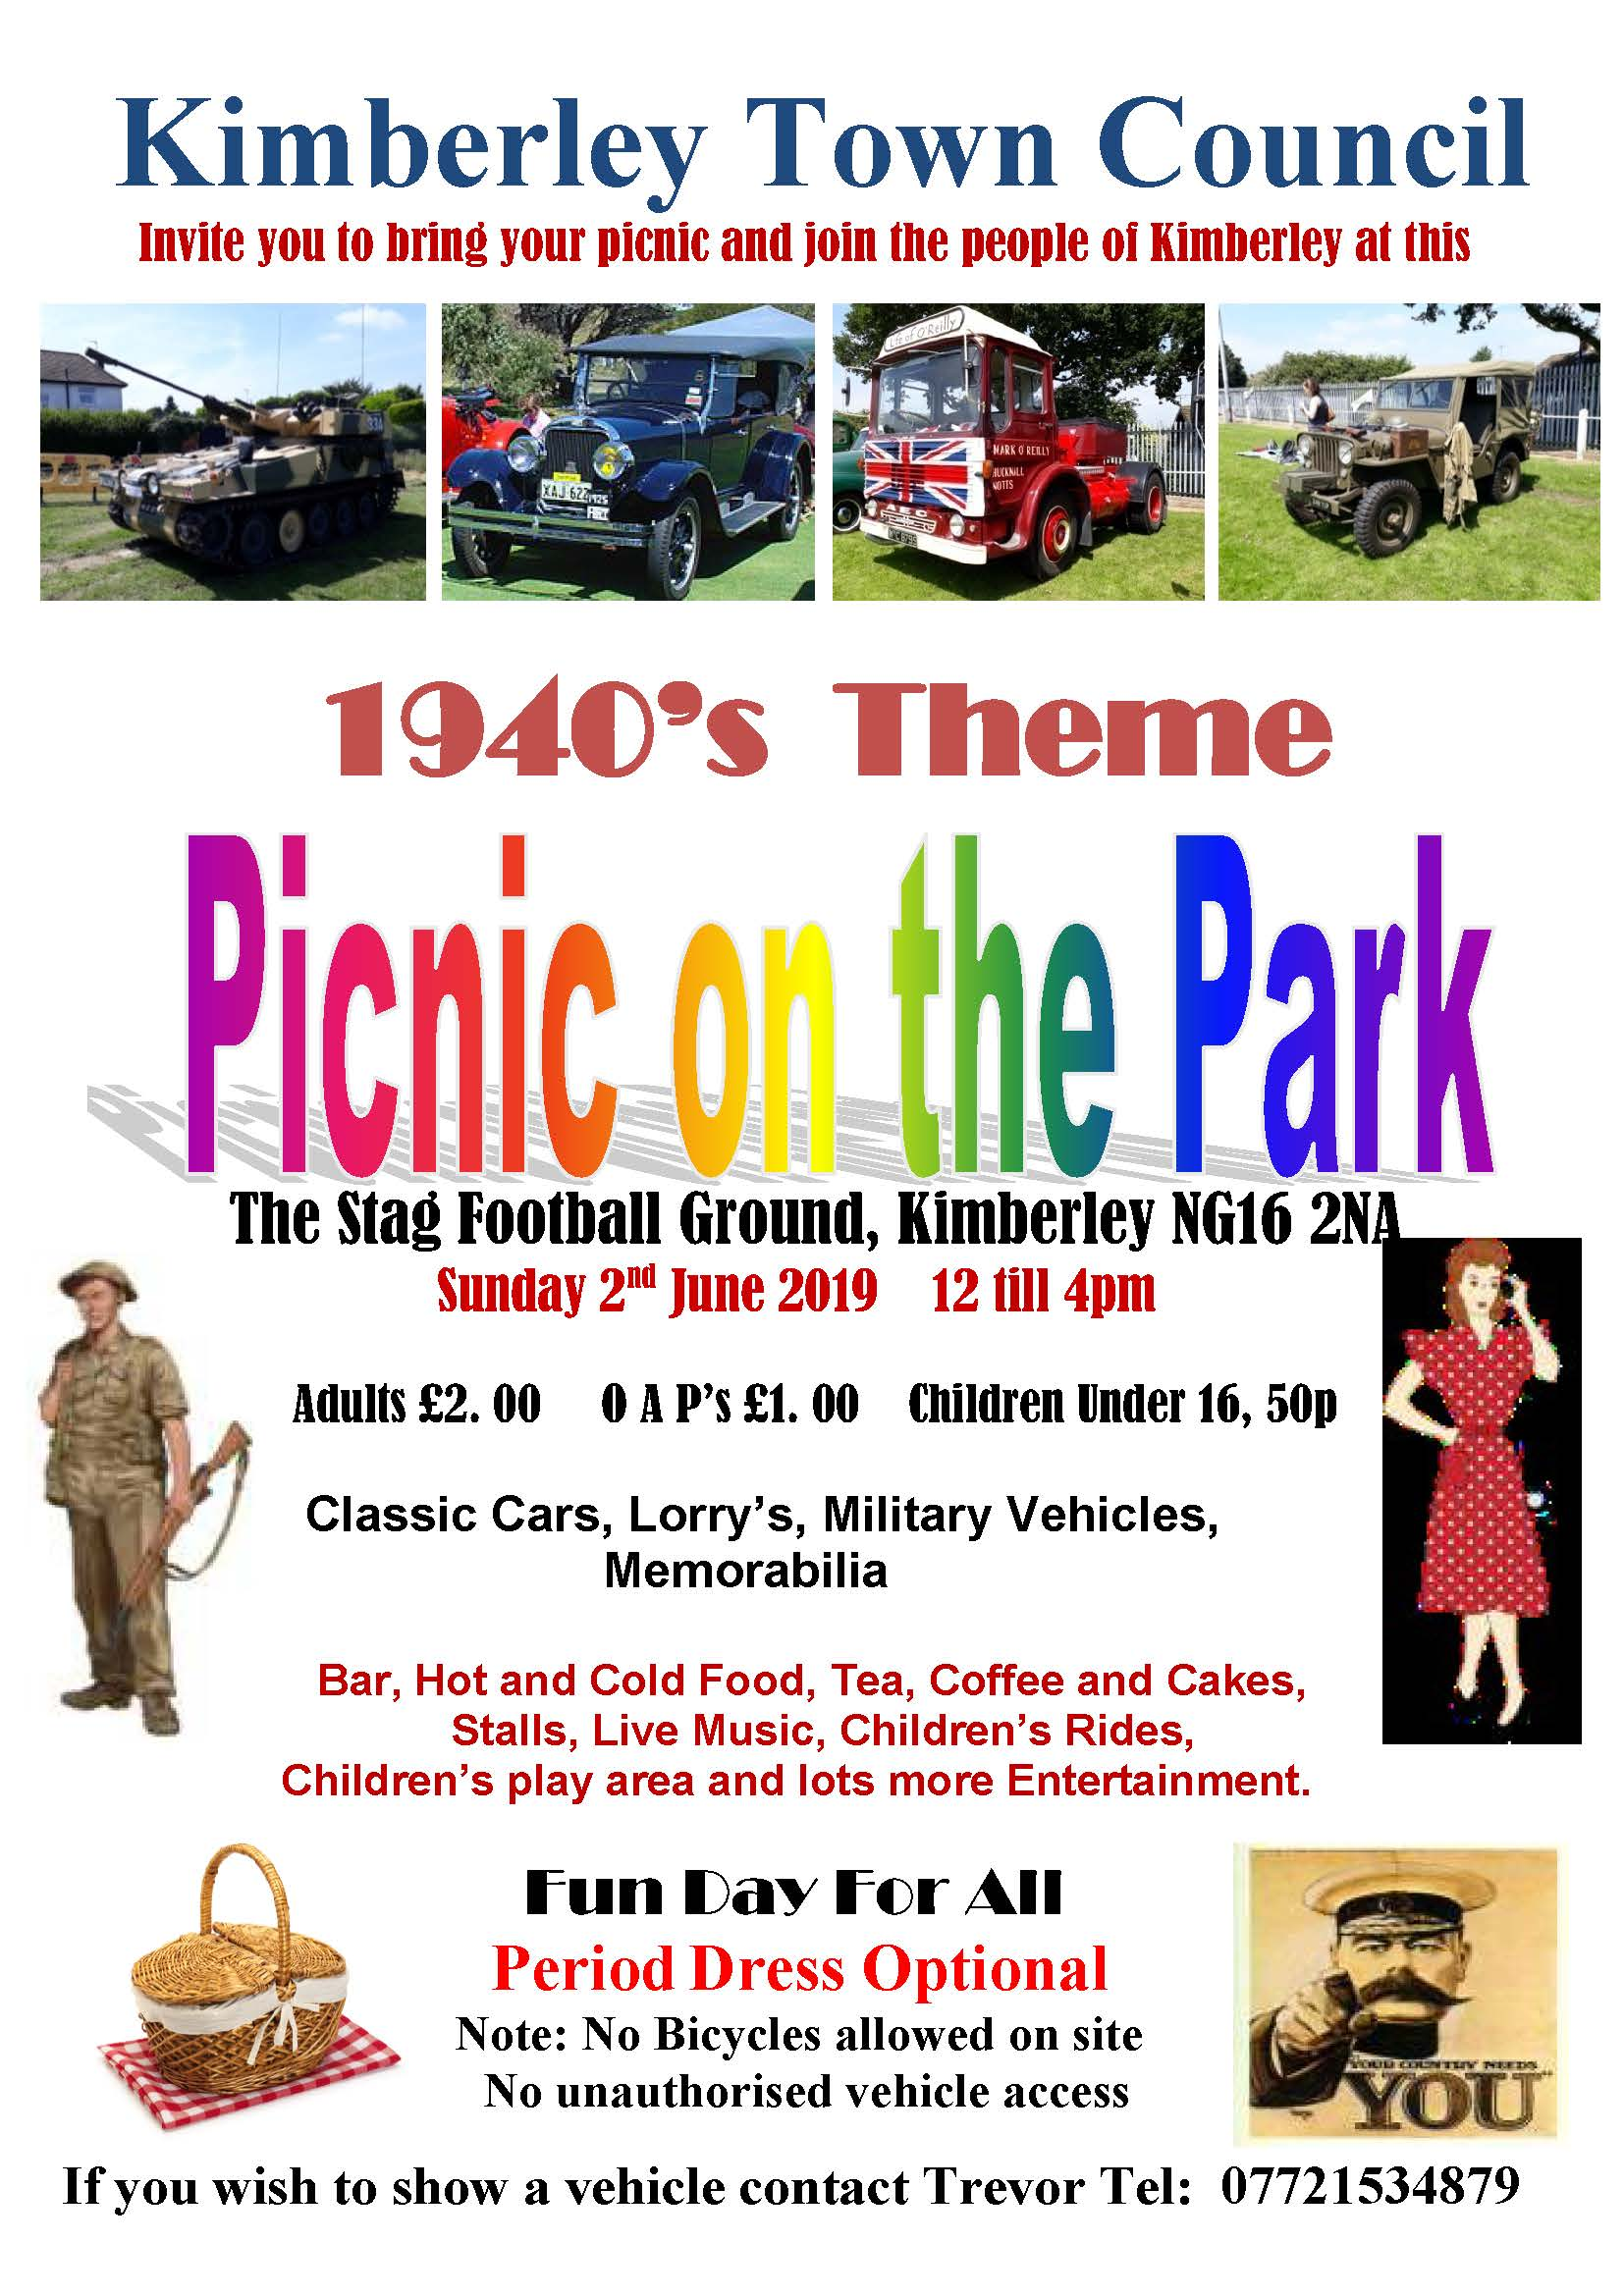 1940s Picnic on the Park event.